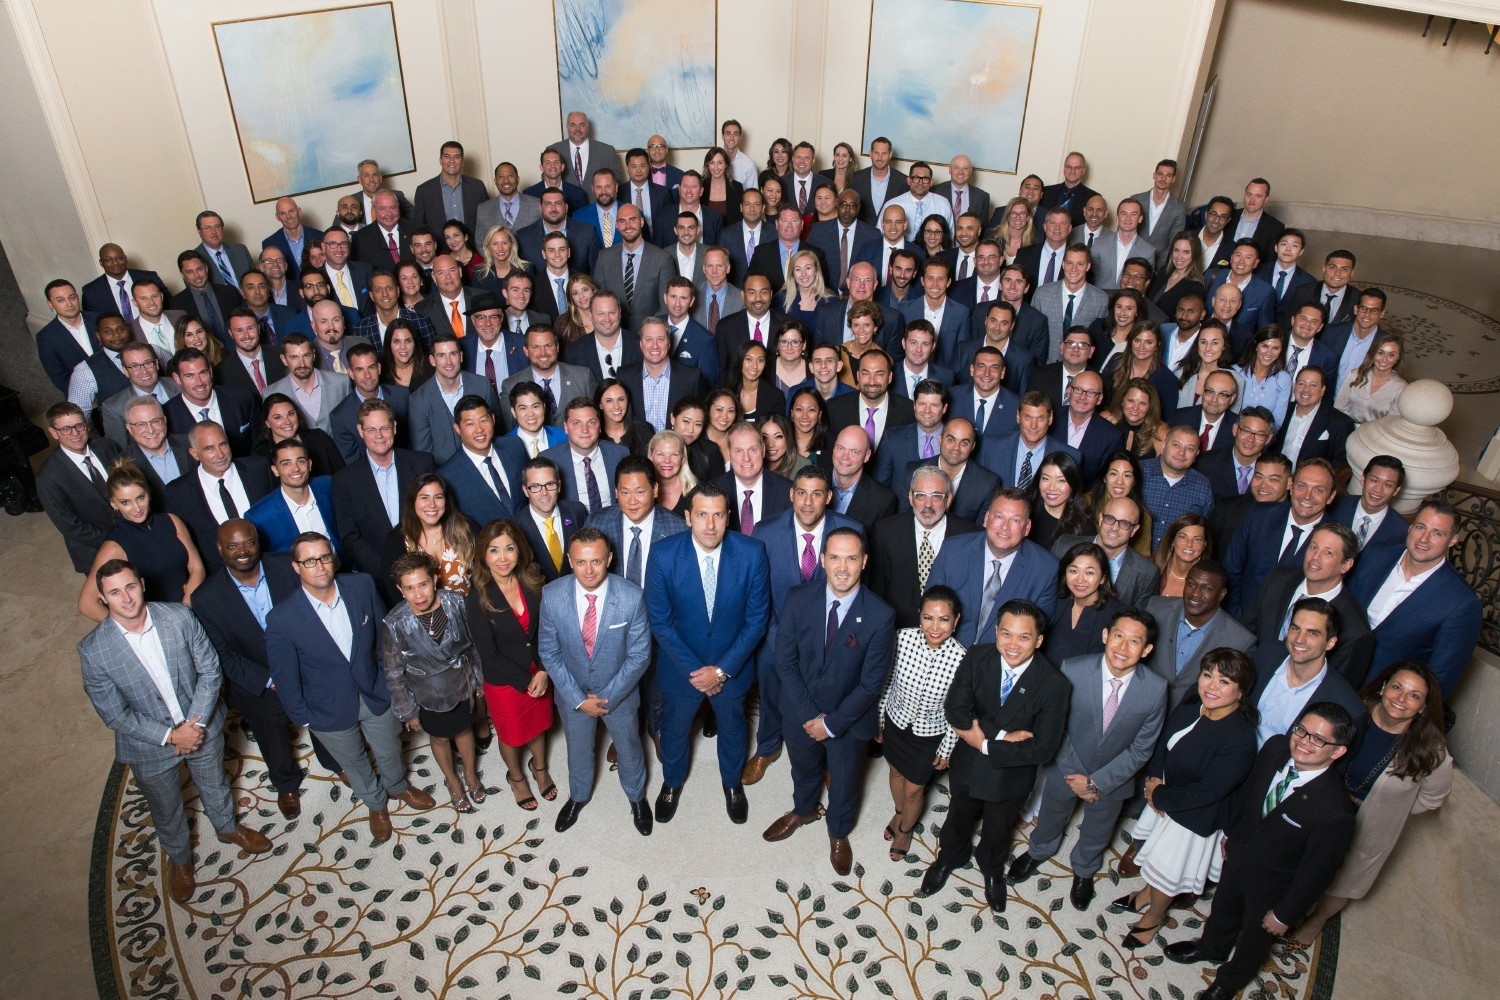 WestPac Wealth Partners Photo